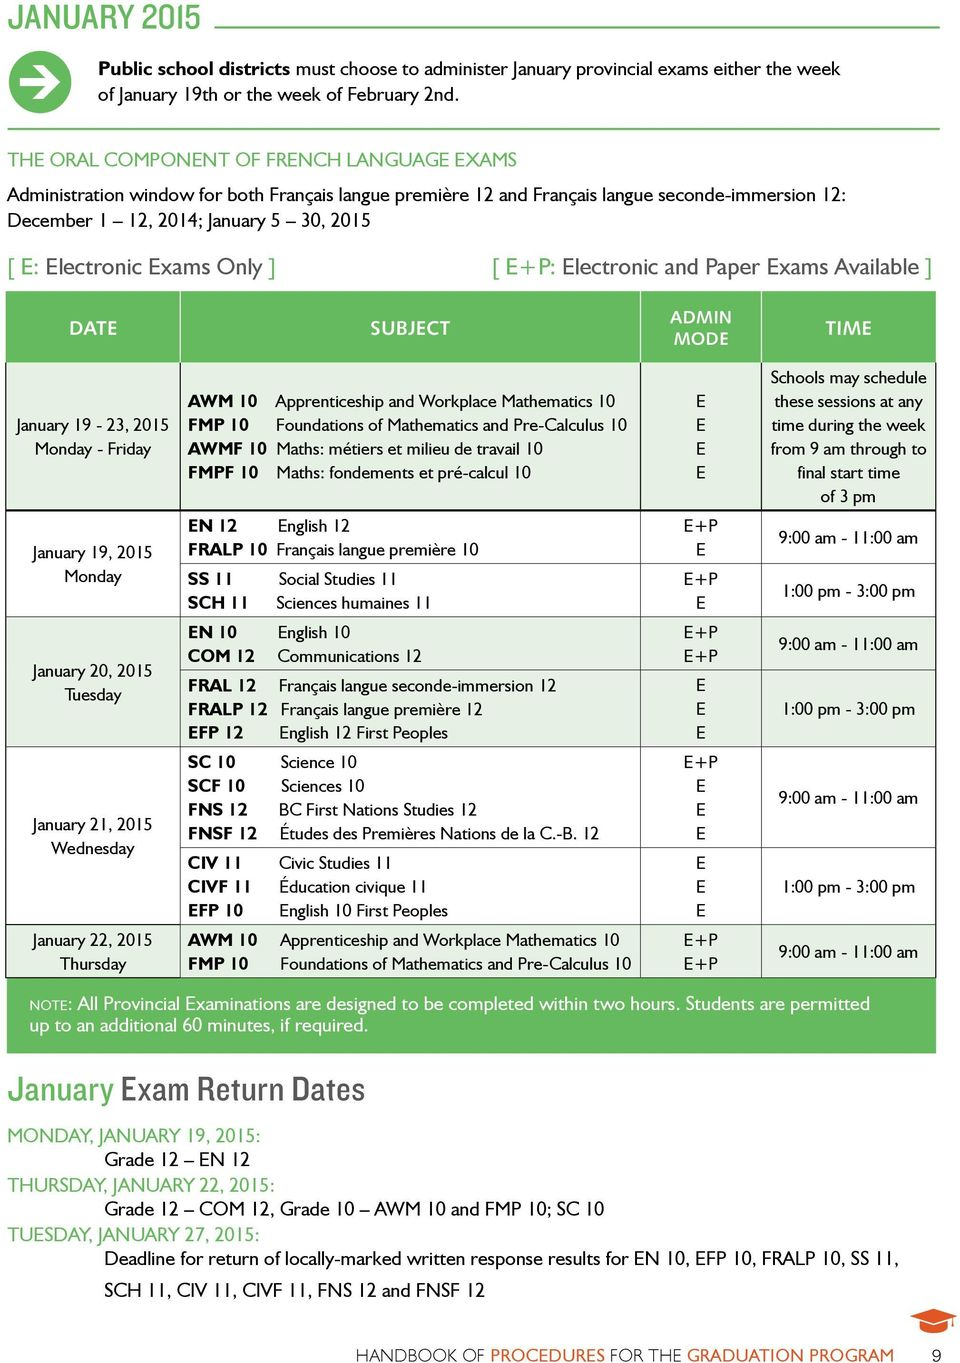 Electronic Exams Only ] [ E+P: Electronic and Paper Exams Available ] Date Subject AdMIN MODE Time January 19-23, 2015 Monday - Friday AWM 10 Apprenticeship and Workplace Mathematics 10 FMP 10